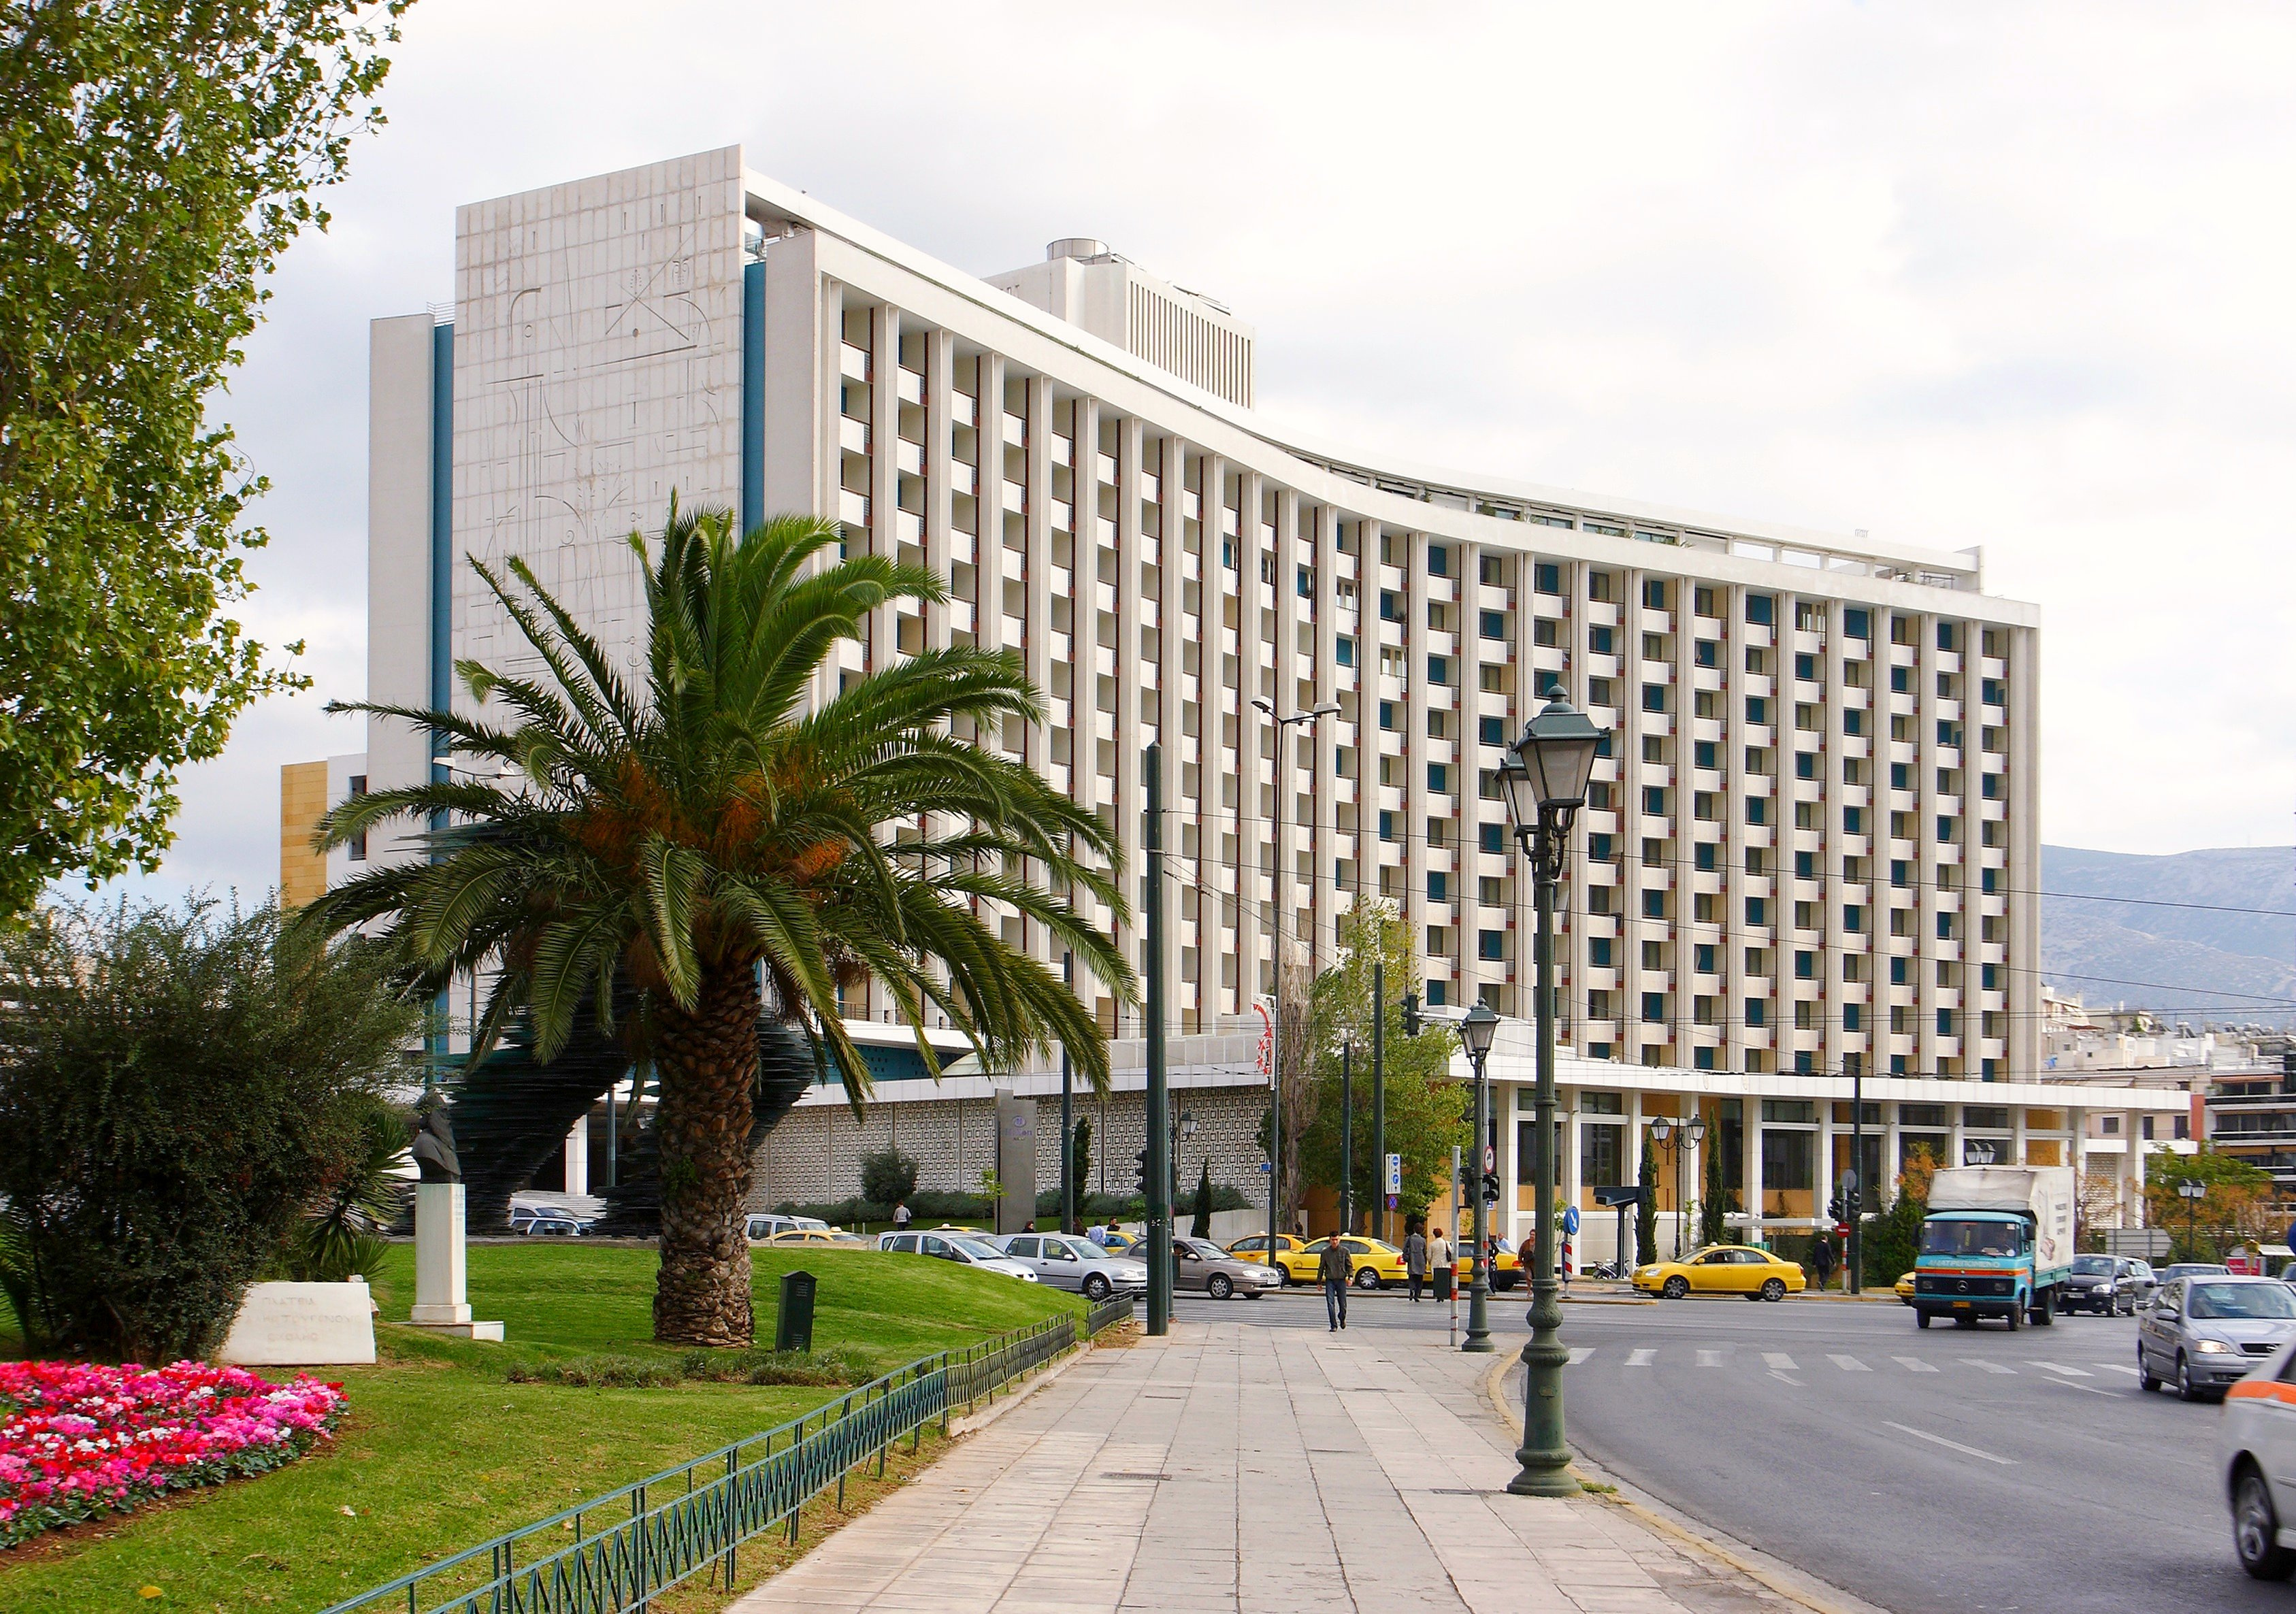 200 Greek and Turkish businessmen to meet in Athens